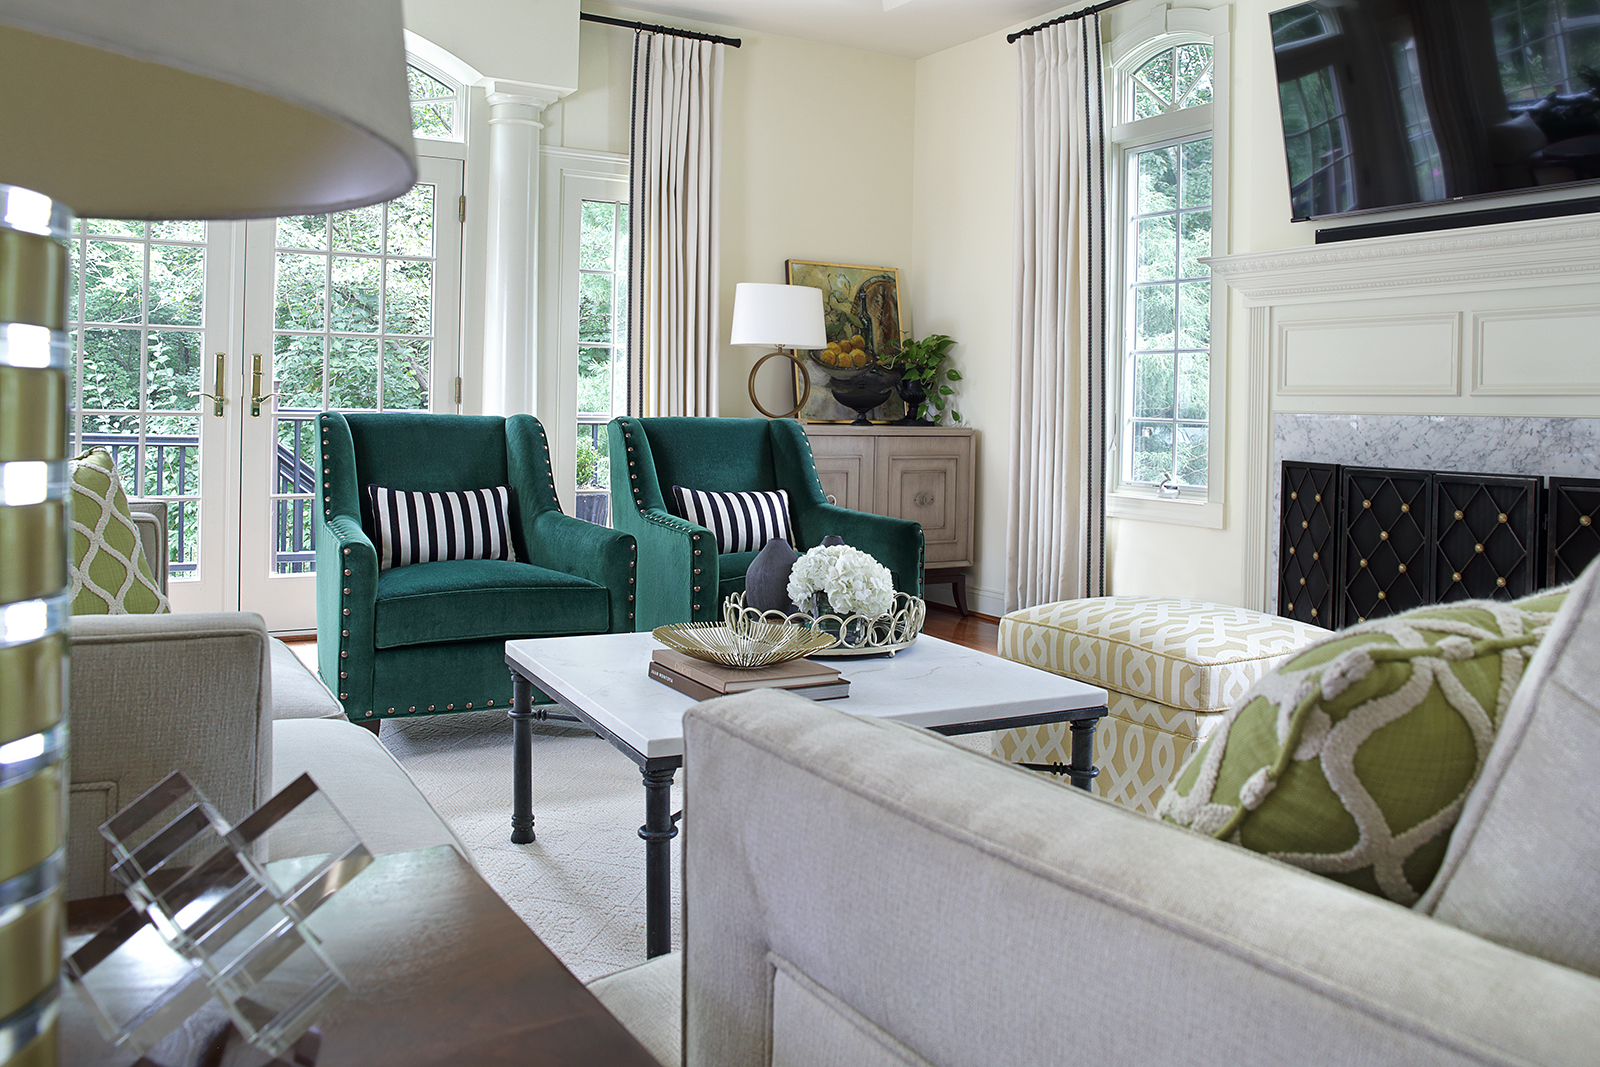 Favorite Past Projects: Gorgeous Family Room Redo